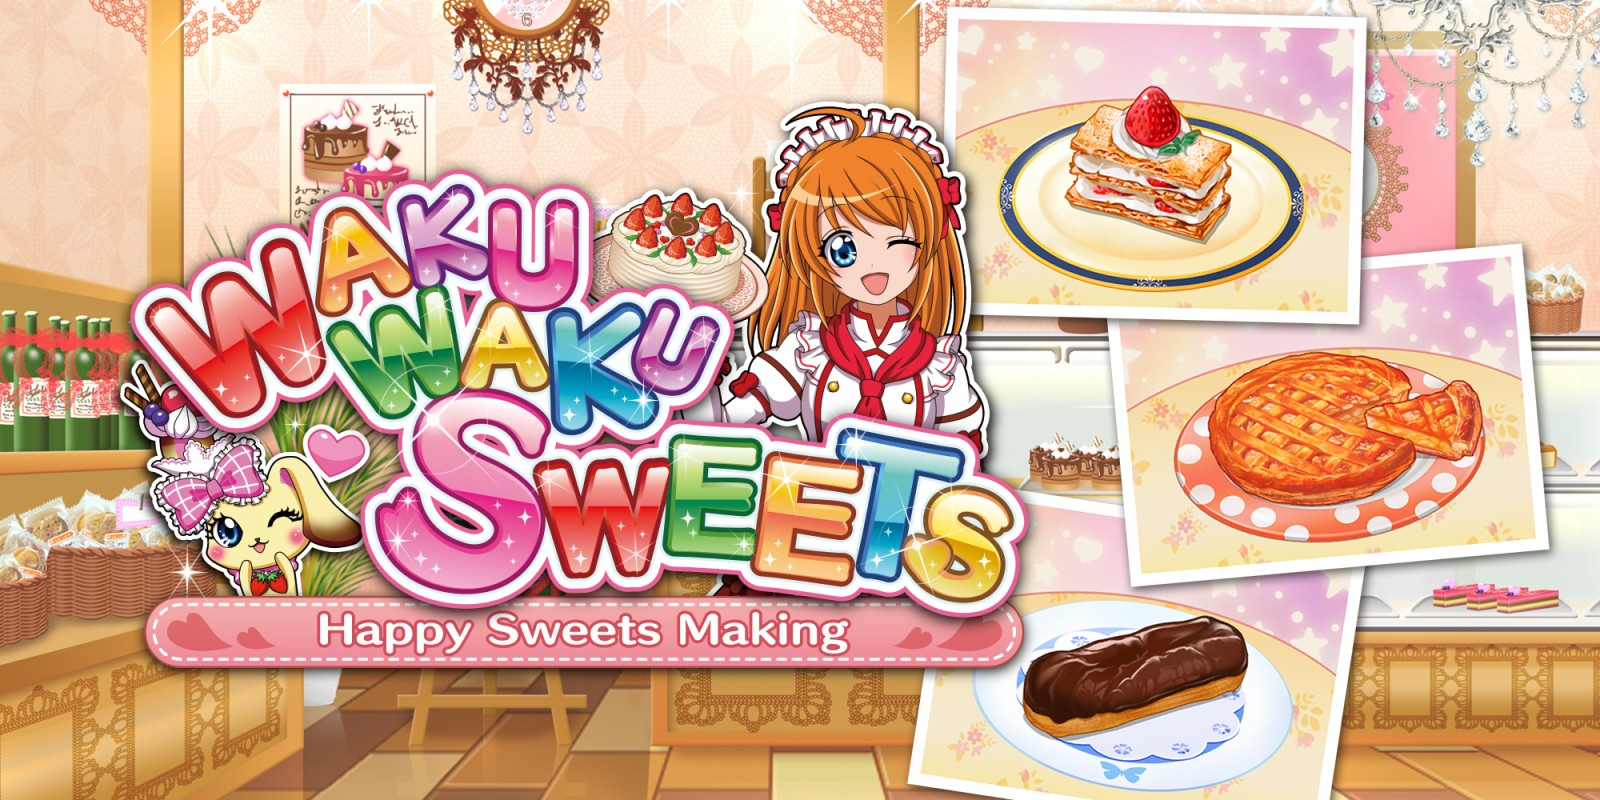 WAKU WAKU SWEETS: Happy Sweets Making